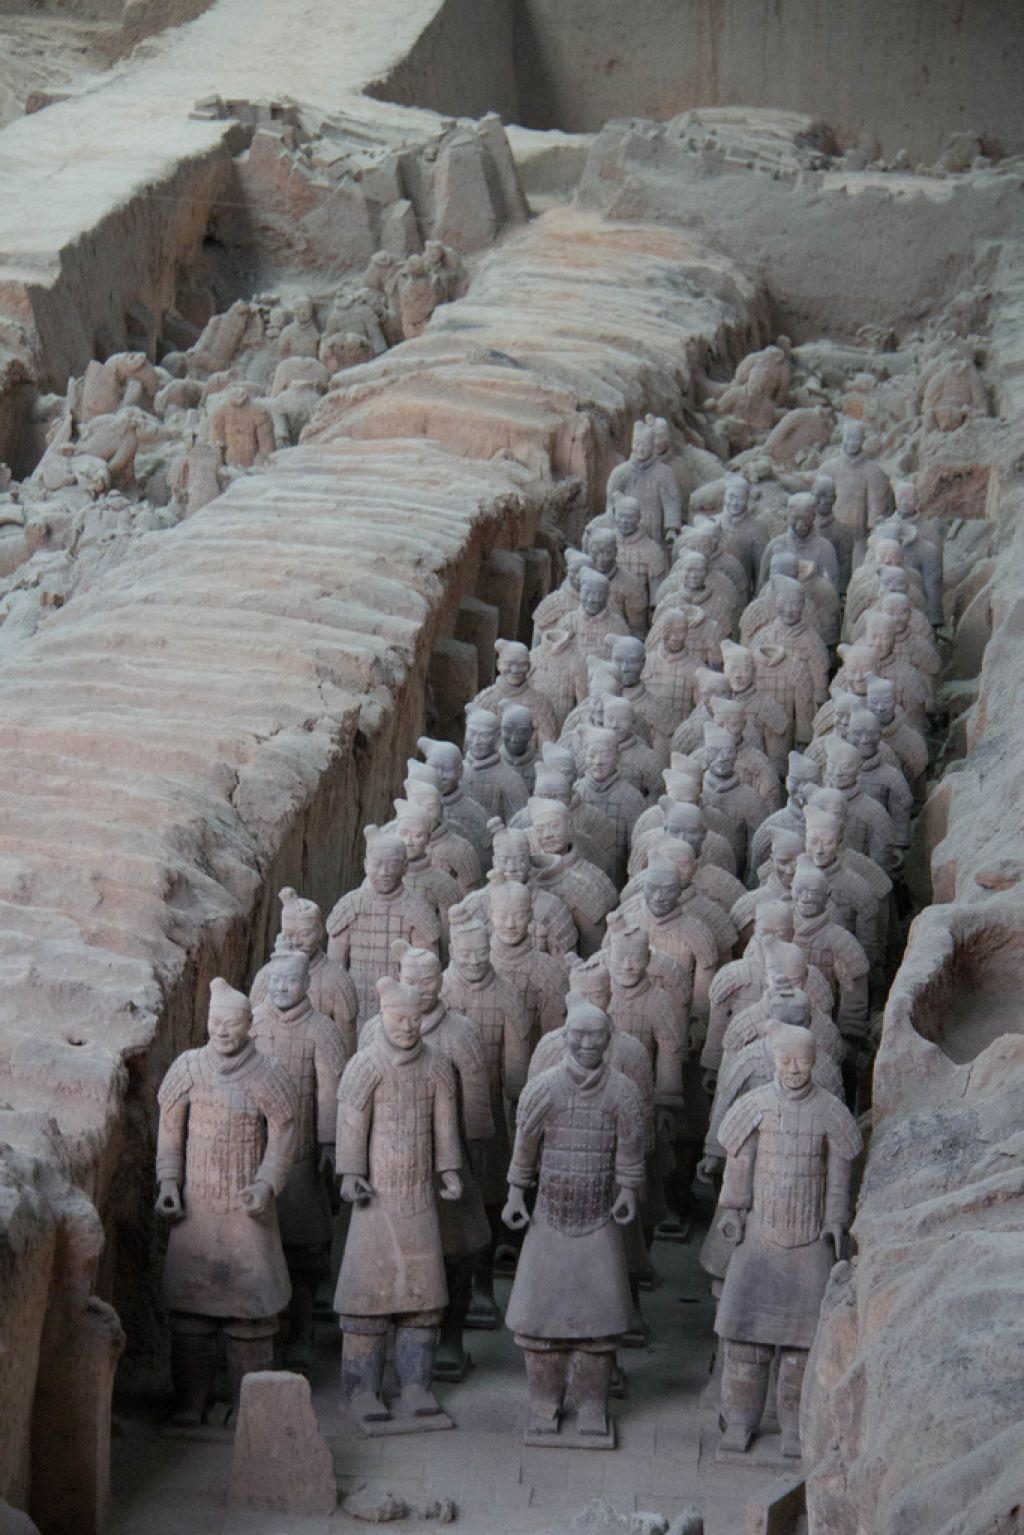 terra cotta warriors1 Museum of Qin Terracotta Warriors